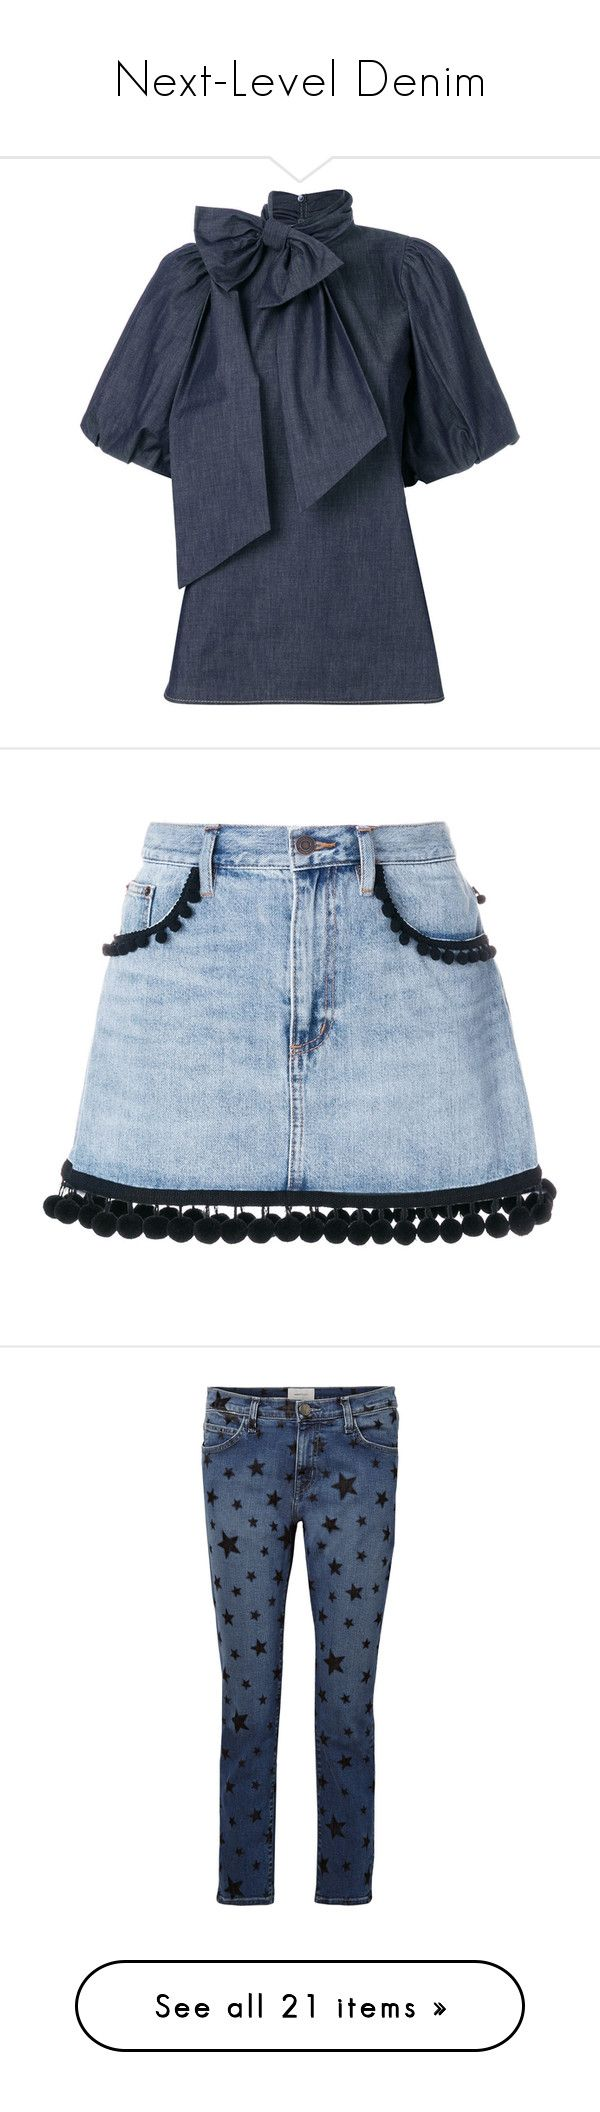 """""""Next-Level Denim"""" by polyvore-editorial ❤ liked on Polyvore featuring nextleveldenim, tops, blouses, blue, blue short sleeve top, short sleeve tops, stitch top, short sleeve blouse, oversized tops and skirts"""